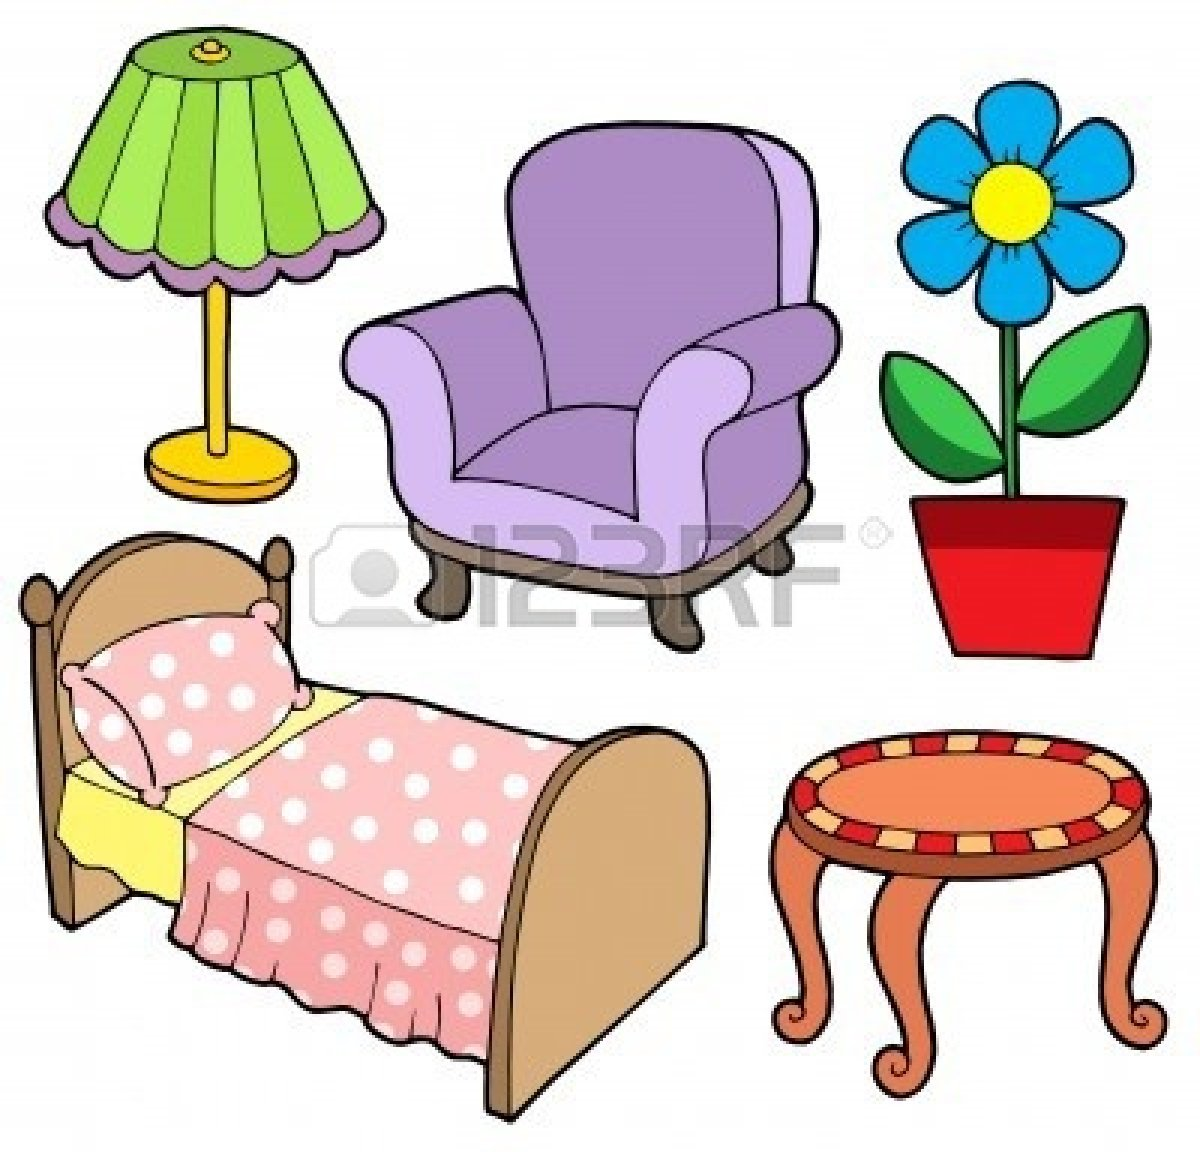 Furniture clipart 5 » Clipart Station.